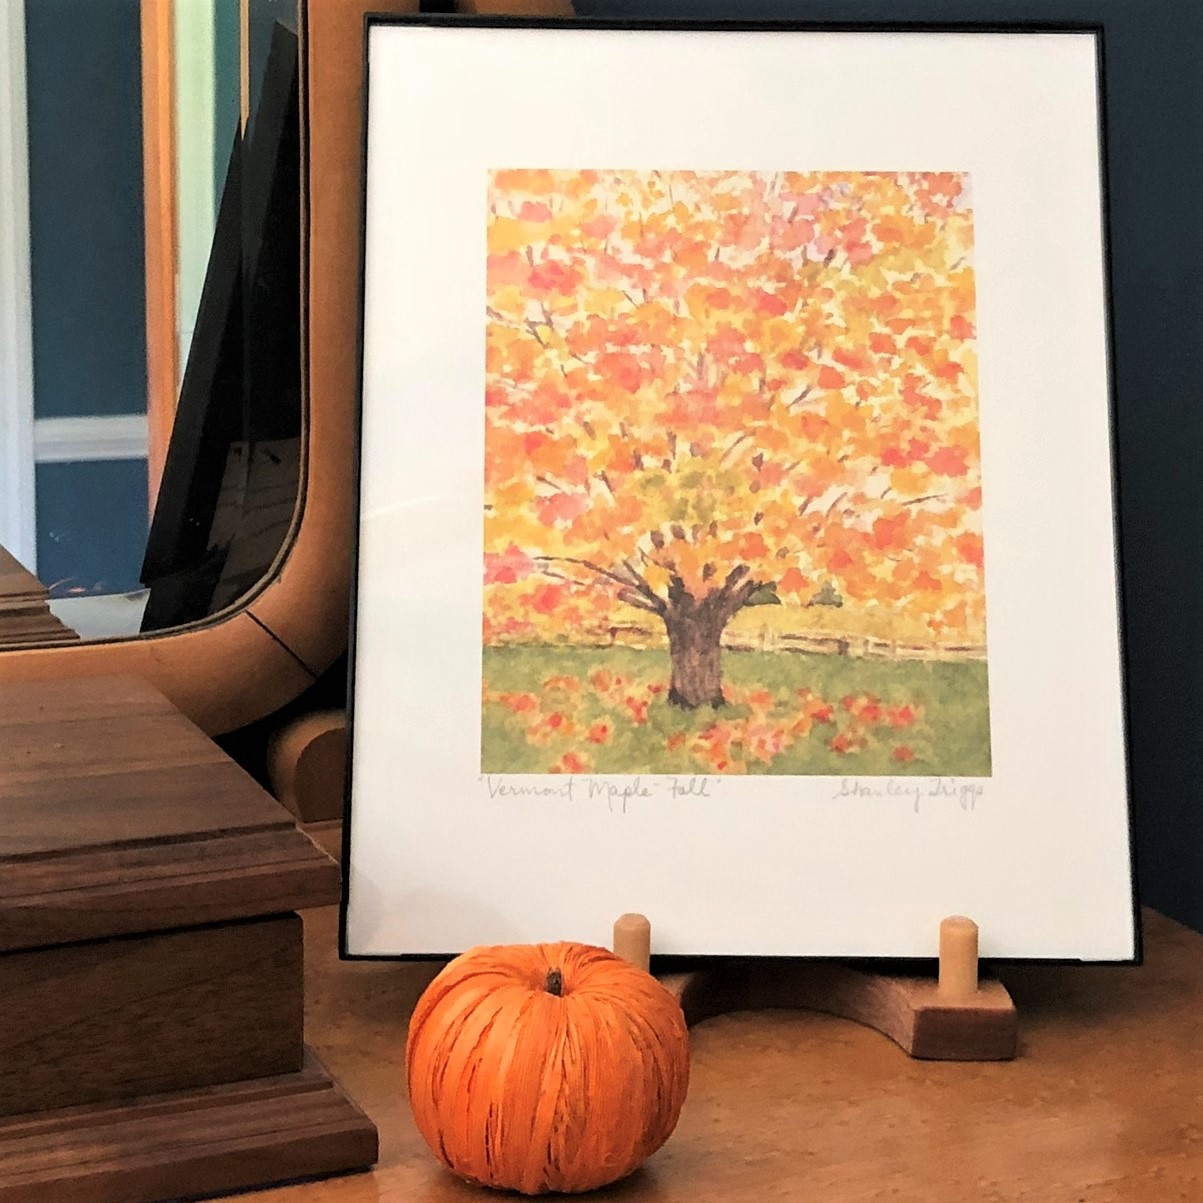 Vermont Maple Fall art by Shanley Triggs